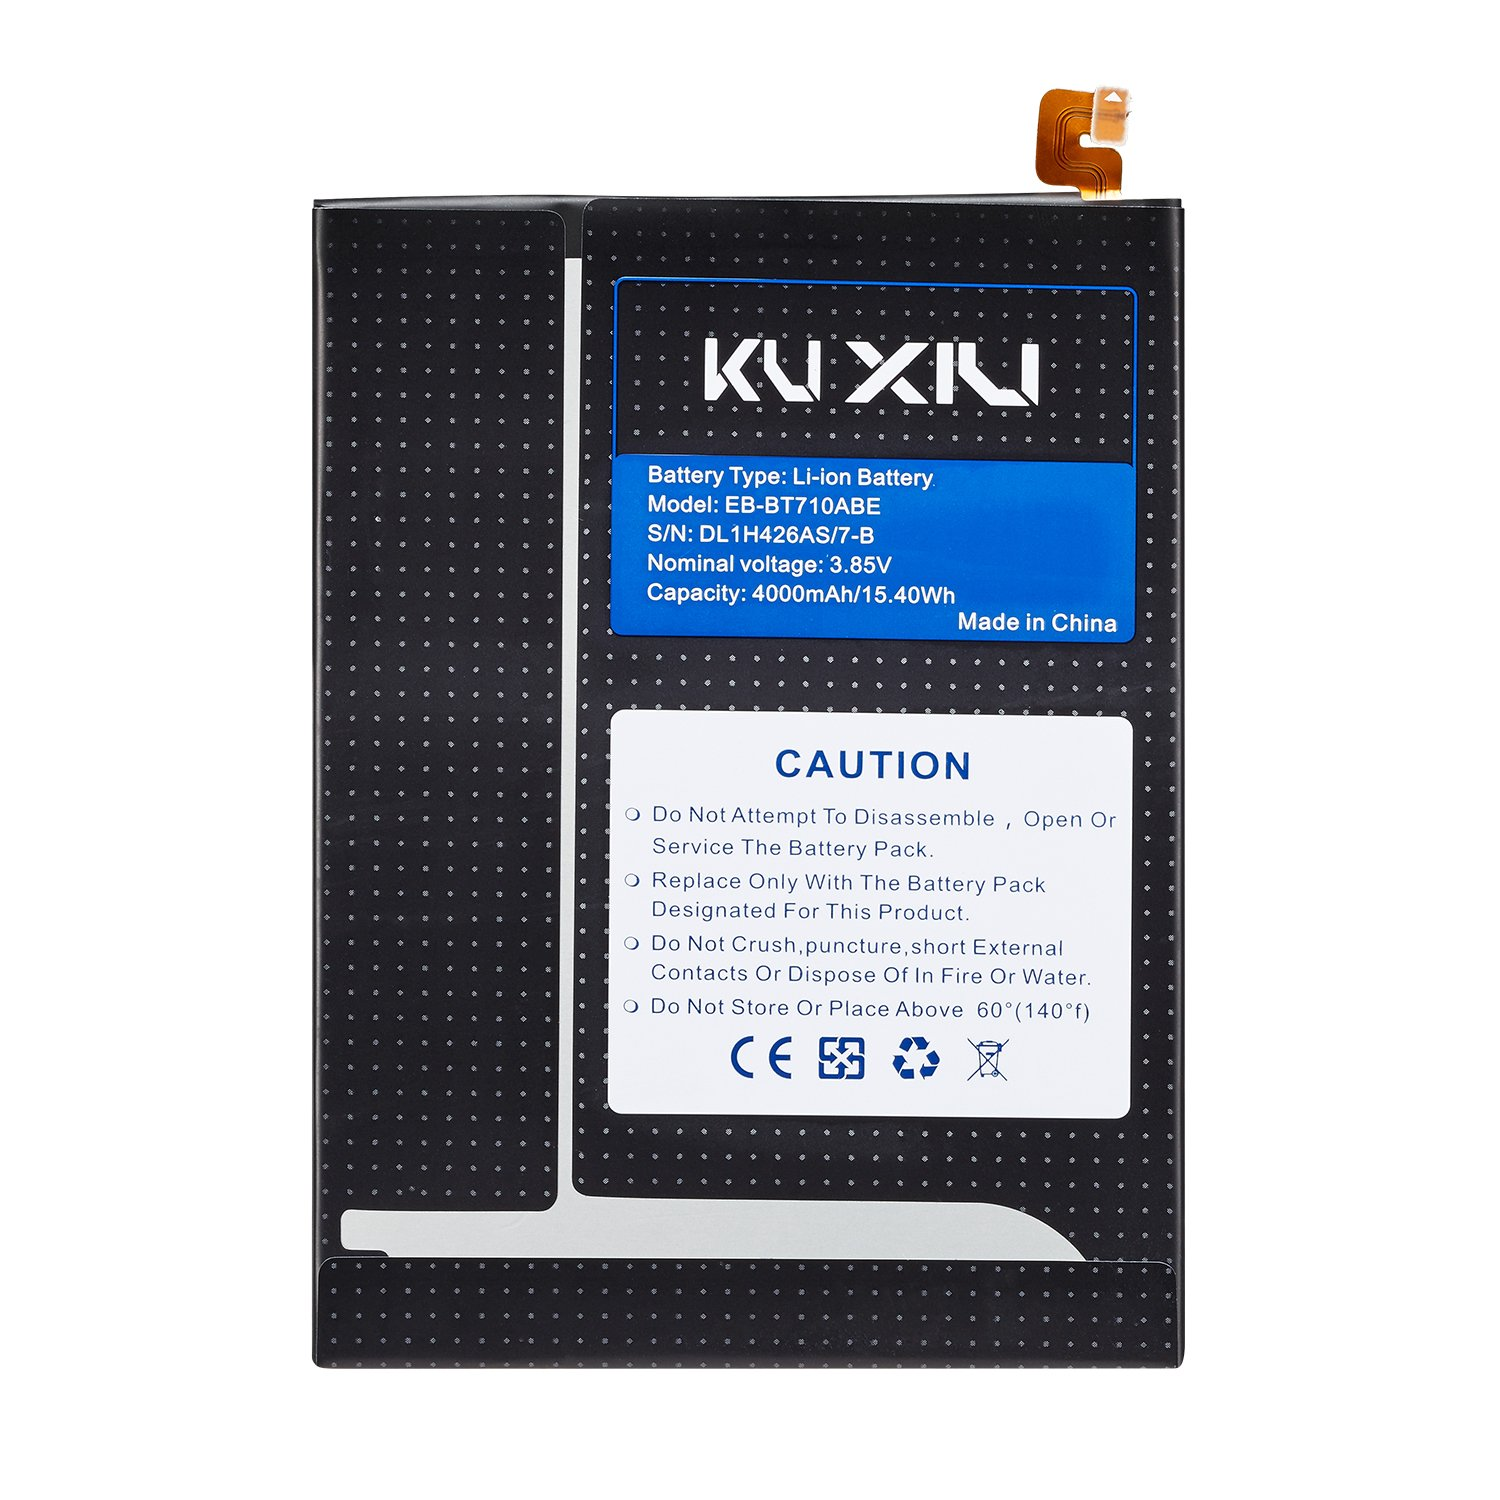 """Kuxiu EB-BT710ABE 4000mAh Replacement Internal Battery for Samsung Galaxy Tab S2 8.0"""", Tab S2 Nook 8.0"""" SM-T710 SM-T713 SM-T715 Tablet"""